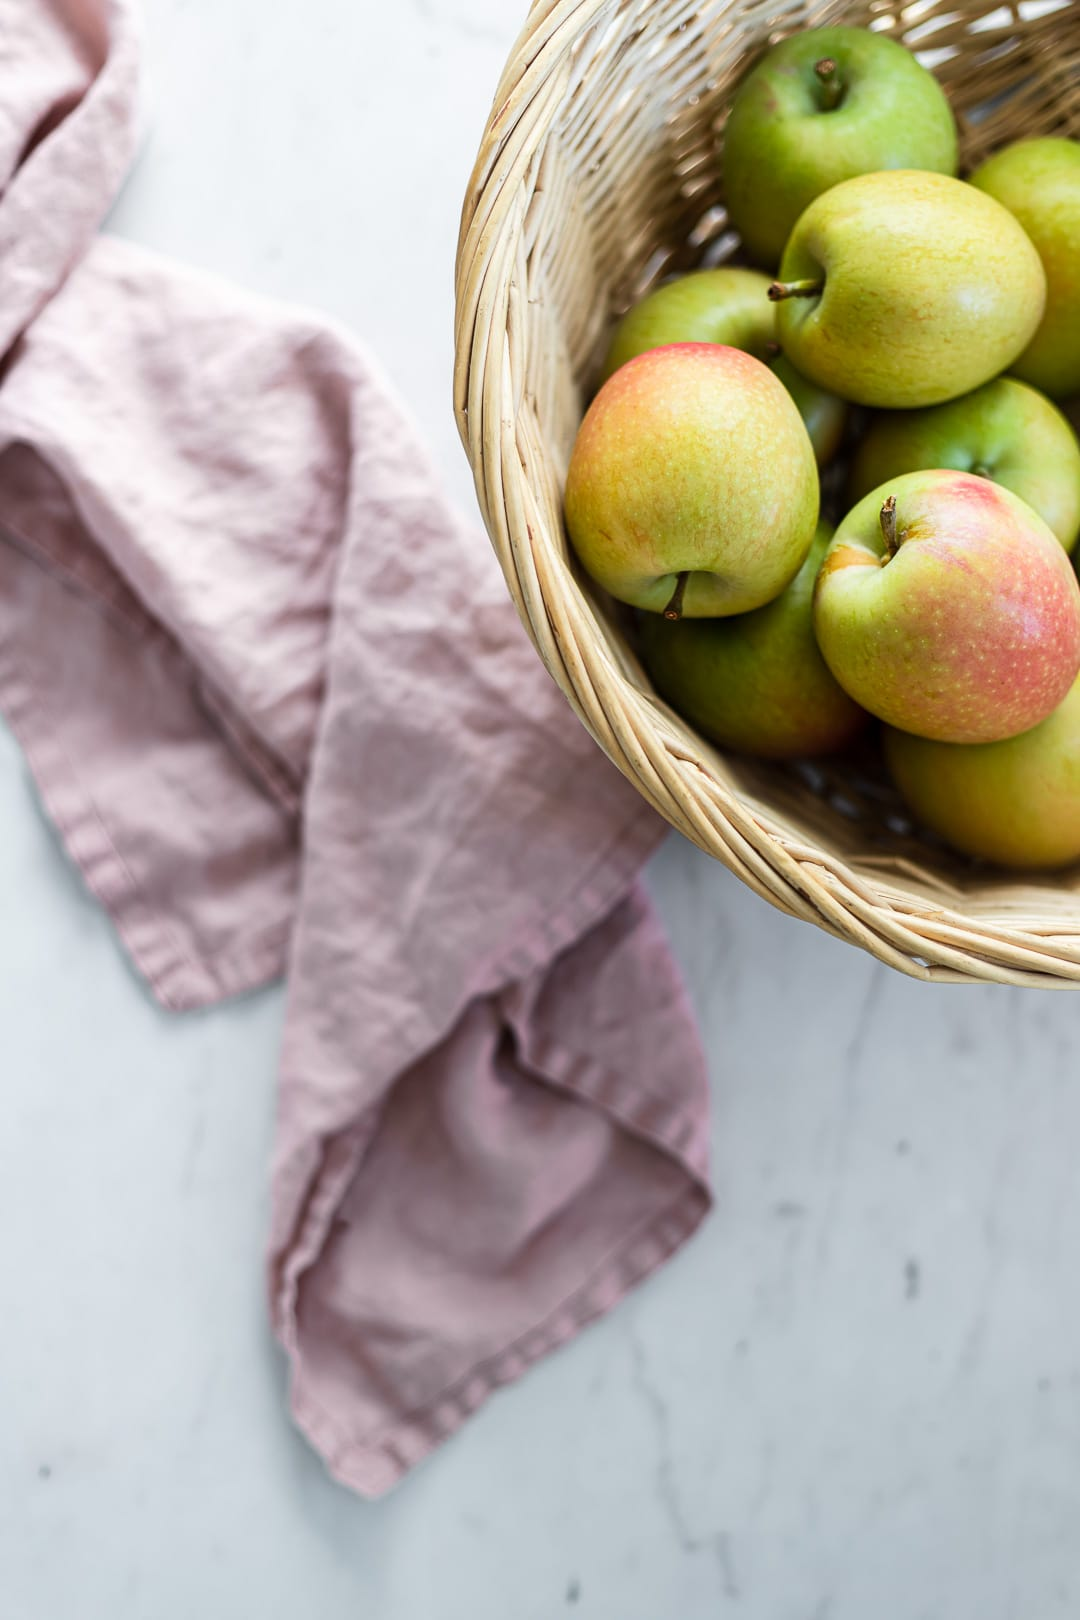 Green apples in a basket on a white marble background with pink linen nearby